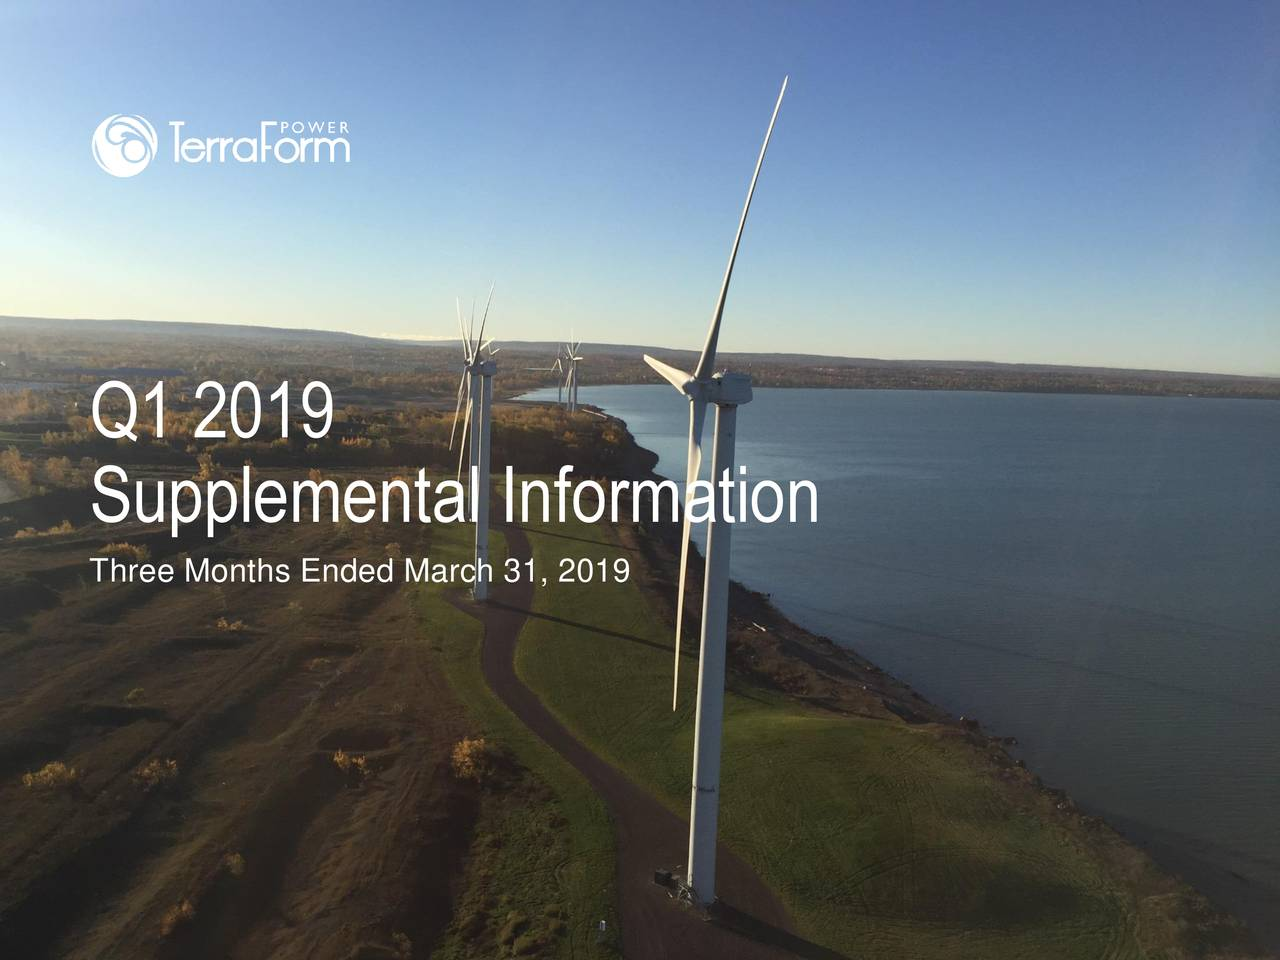 Supplemental Information Three Months Ended March 31, 2019